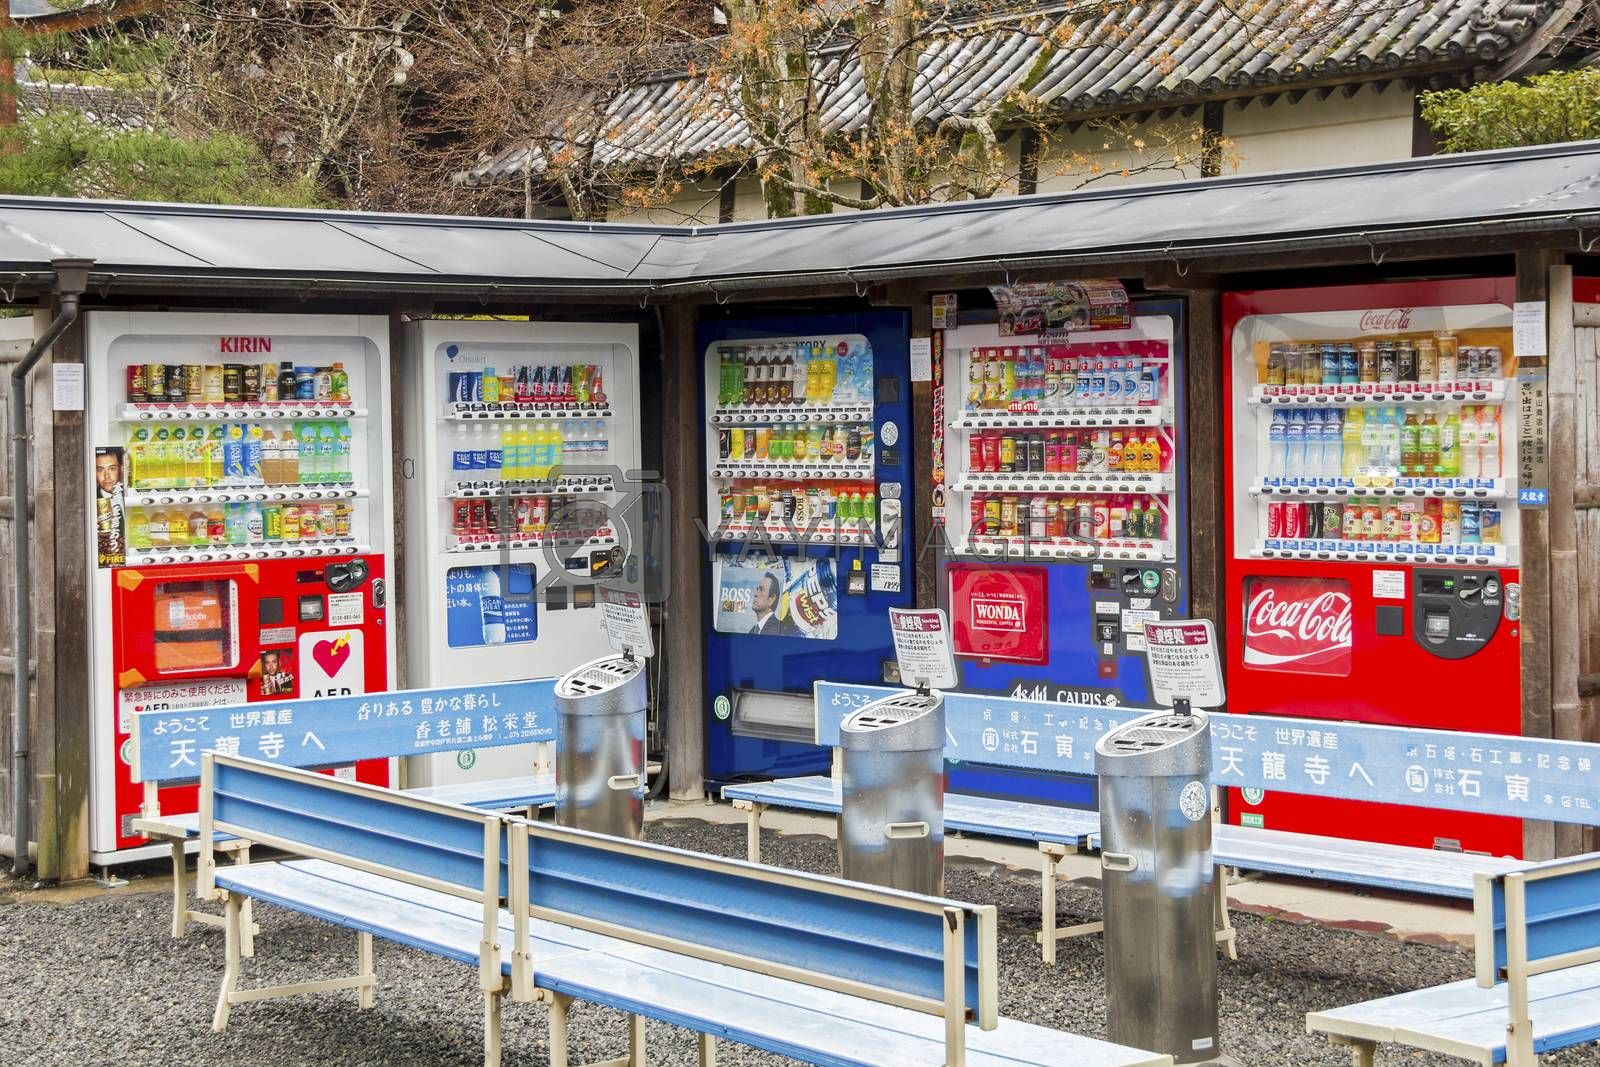 KYOTO, JAPAN - MARCH 28, 2012: Traditional outdoor vending machines to sell various drinks and snacks and smoking place in Kyoto, Japan